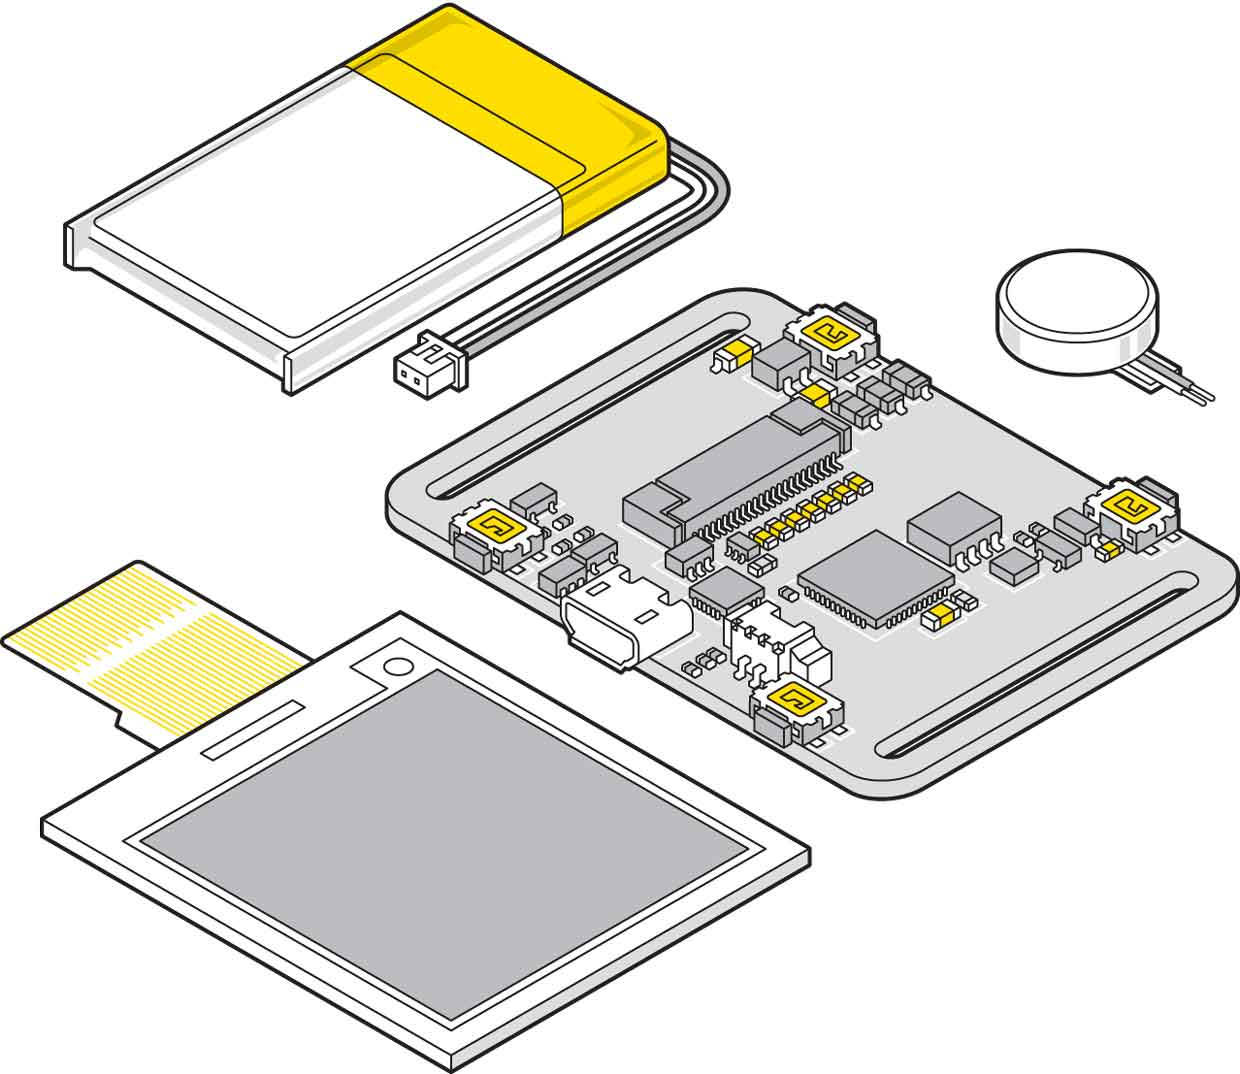 Illustration of the components.